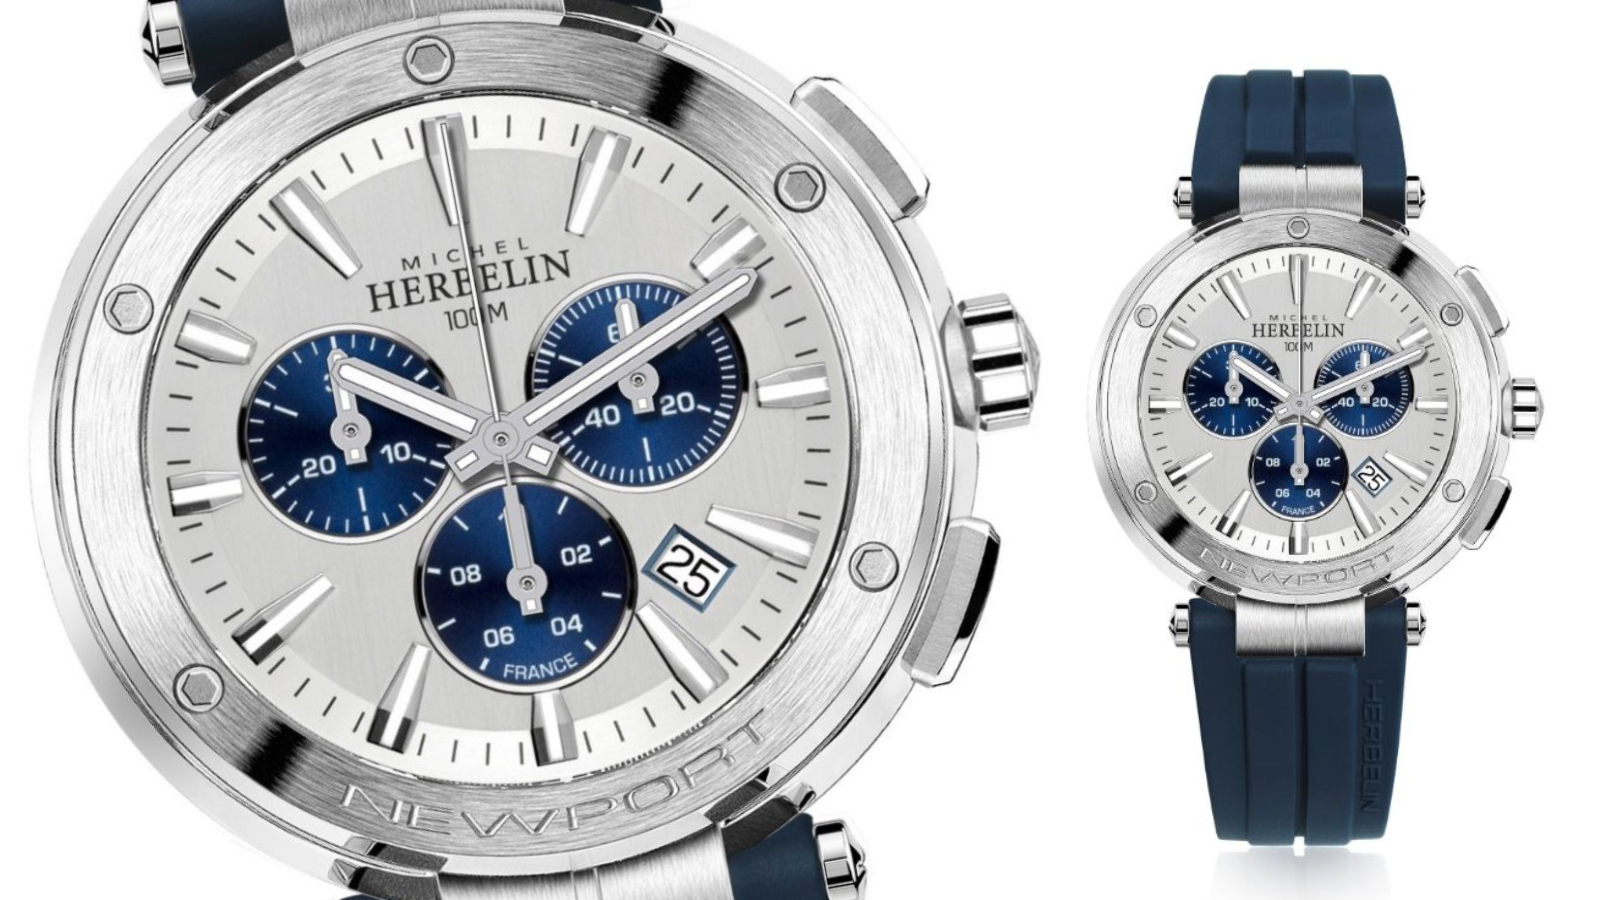 WIN a Michel Herbelin Watch Worth £690